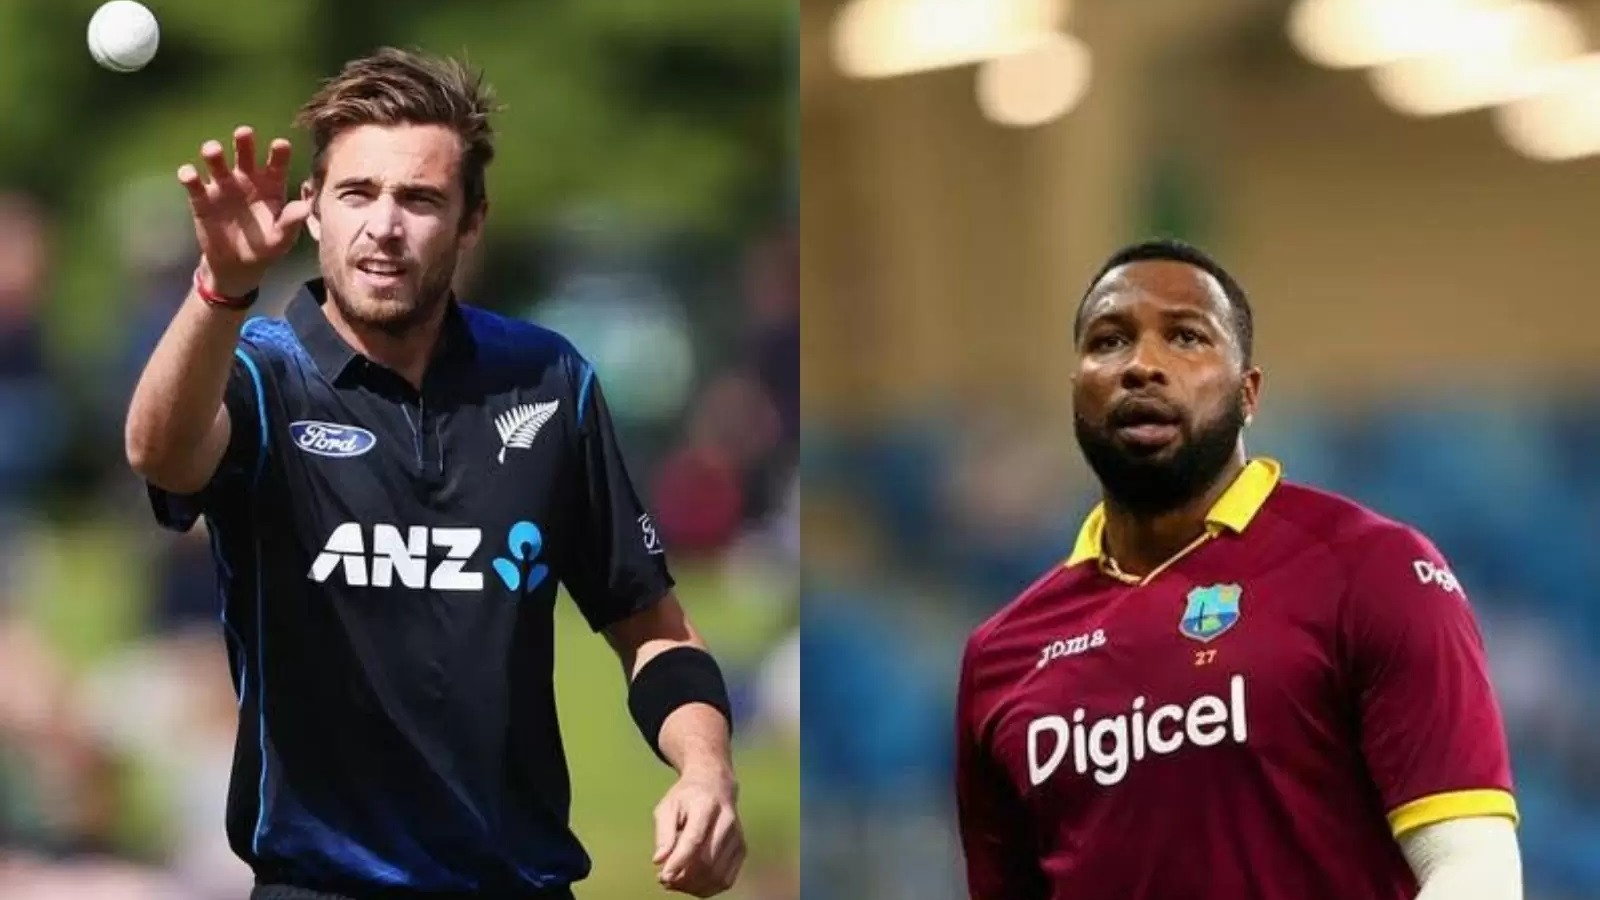 NZ v WI 2020: First T20I - Statistical Preview